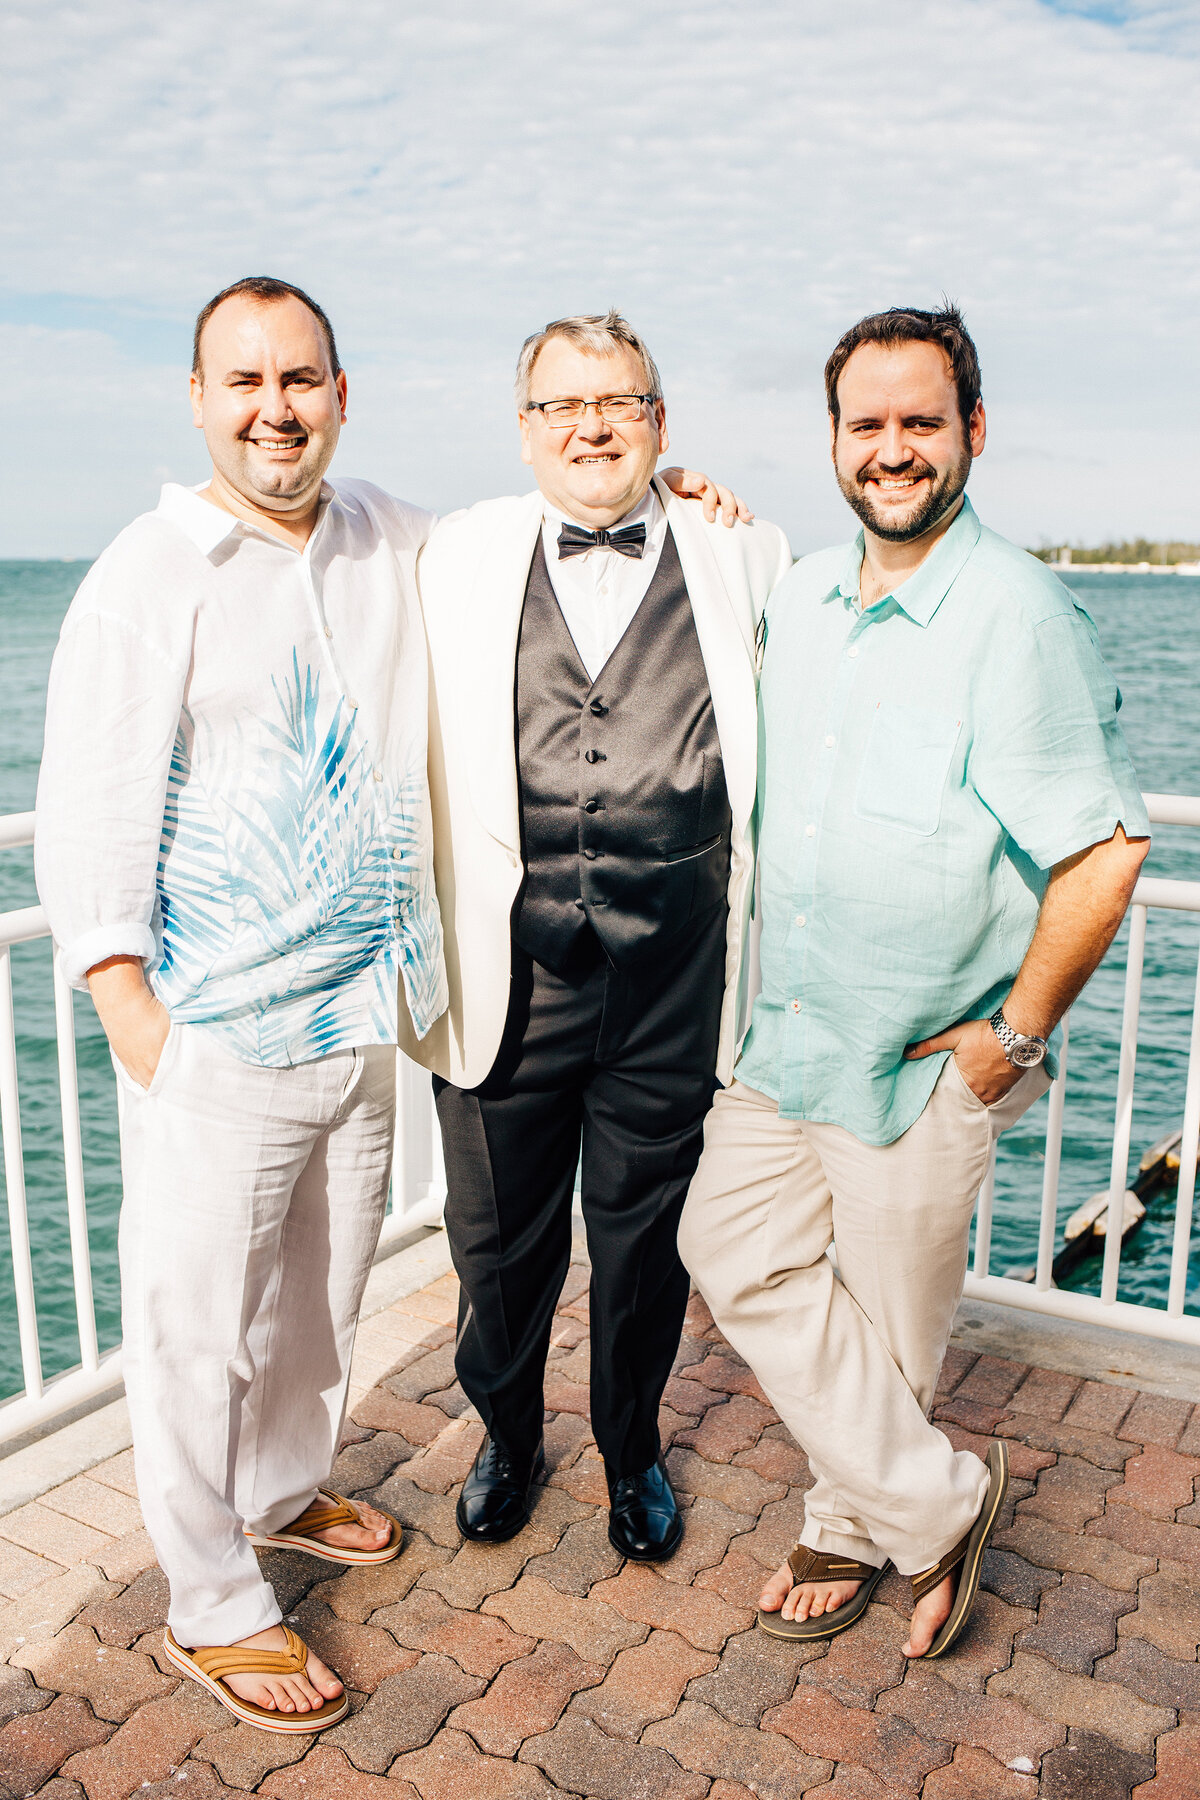 Kimberly_Hoyle_Photography_Bachman_Pier_House_Key_West_Wedding-6